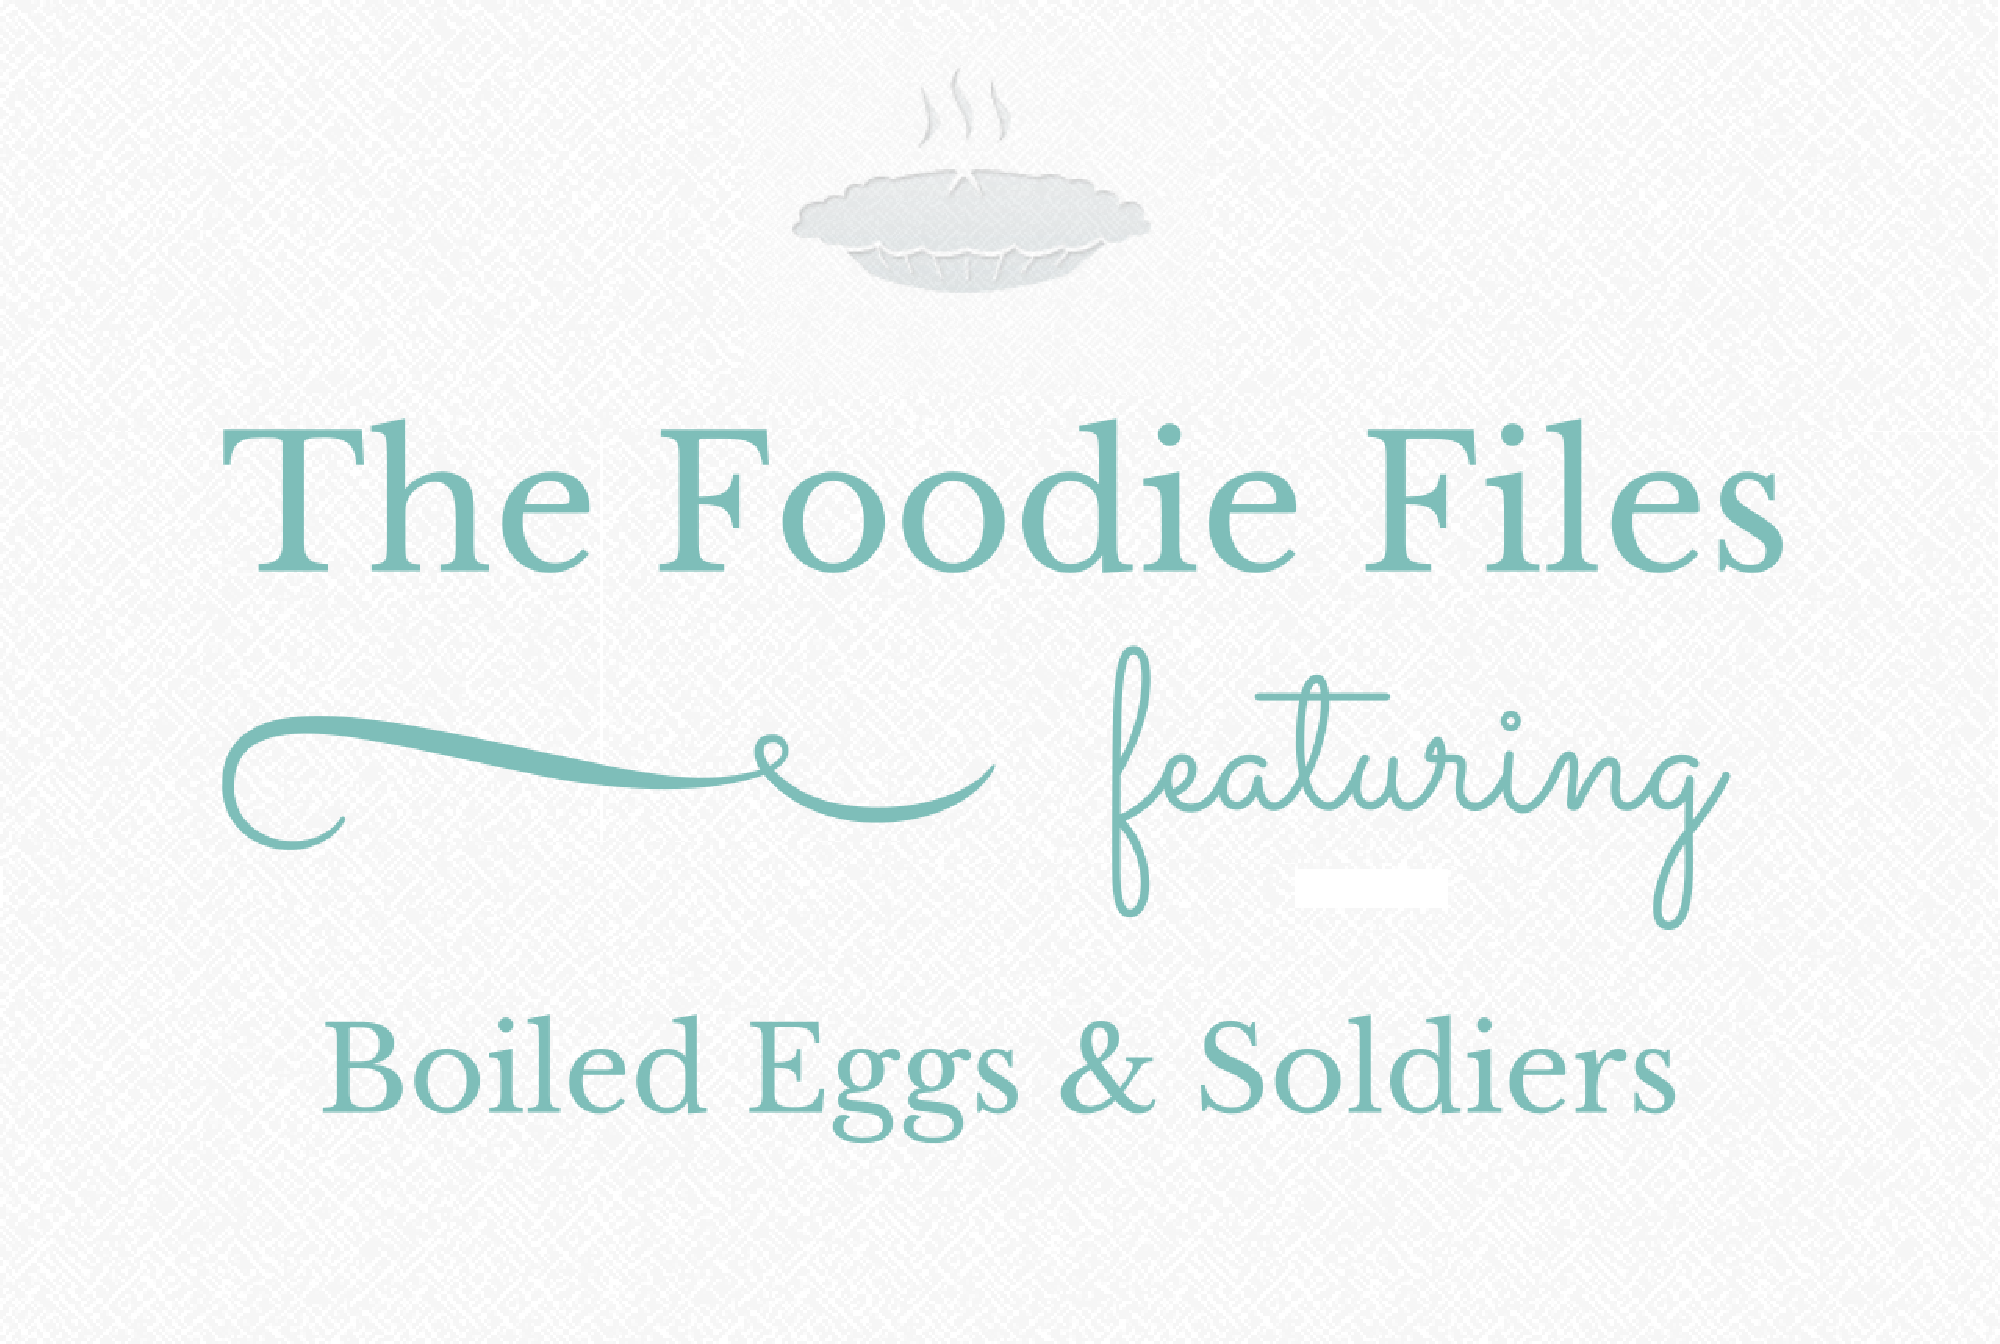 The Foodie Files - Boiled Eggs & Soldiers